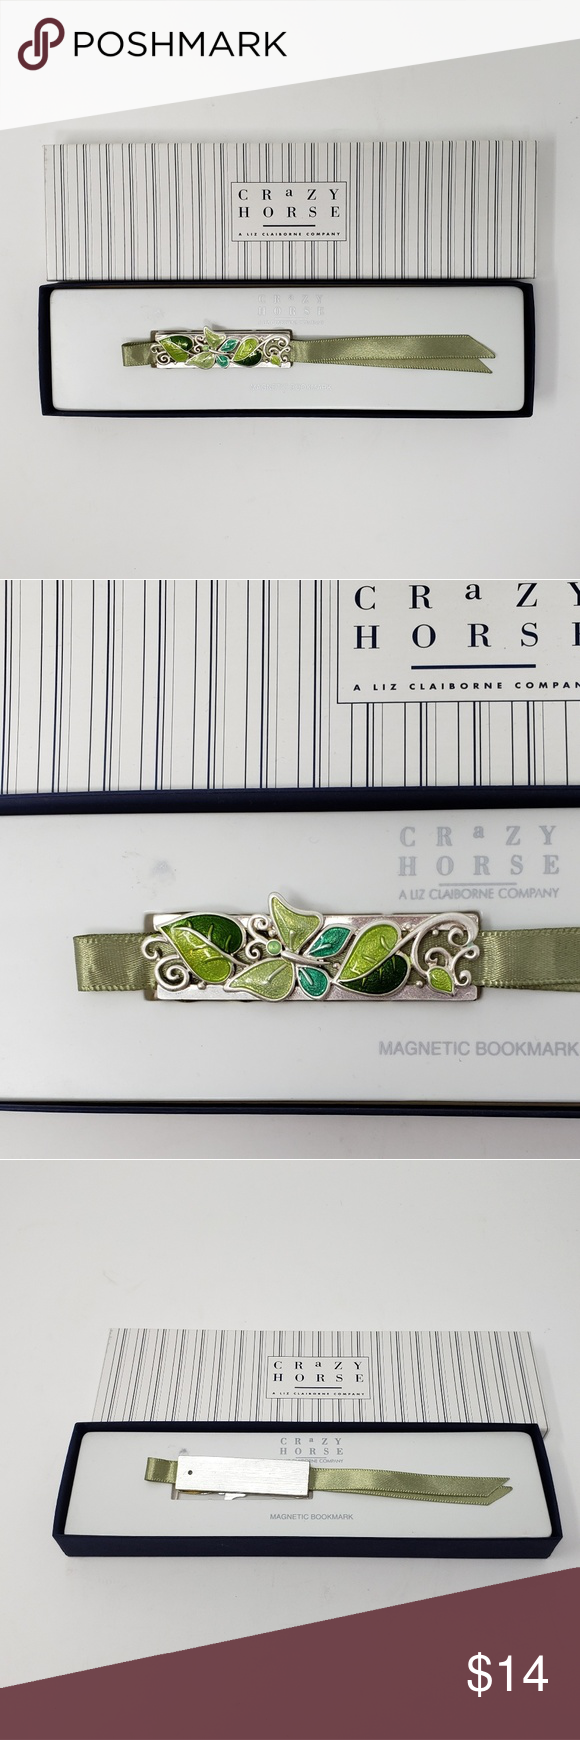 Liz Claiborne Crazy Horse Magnetic Bookmark